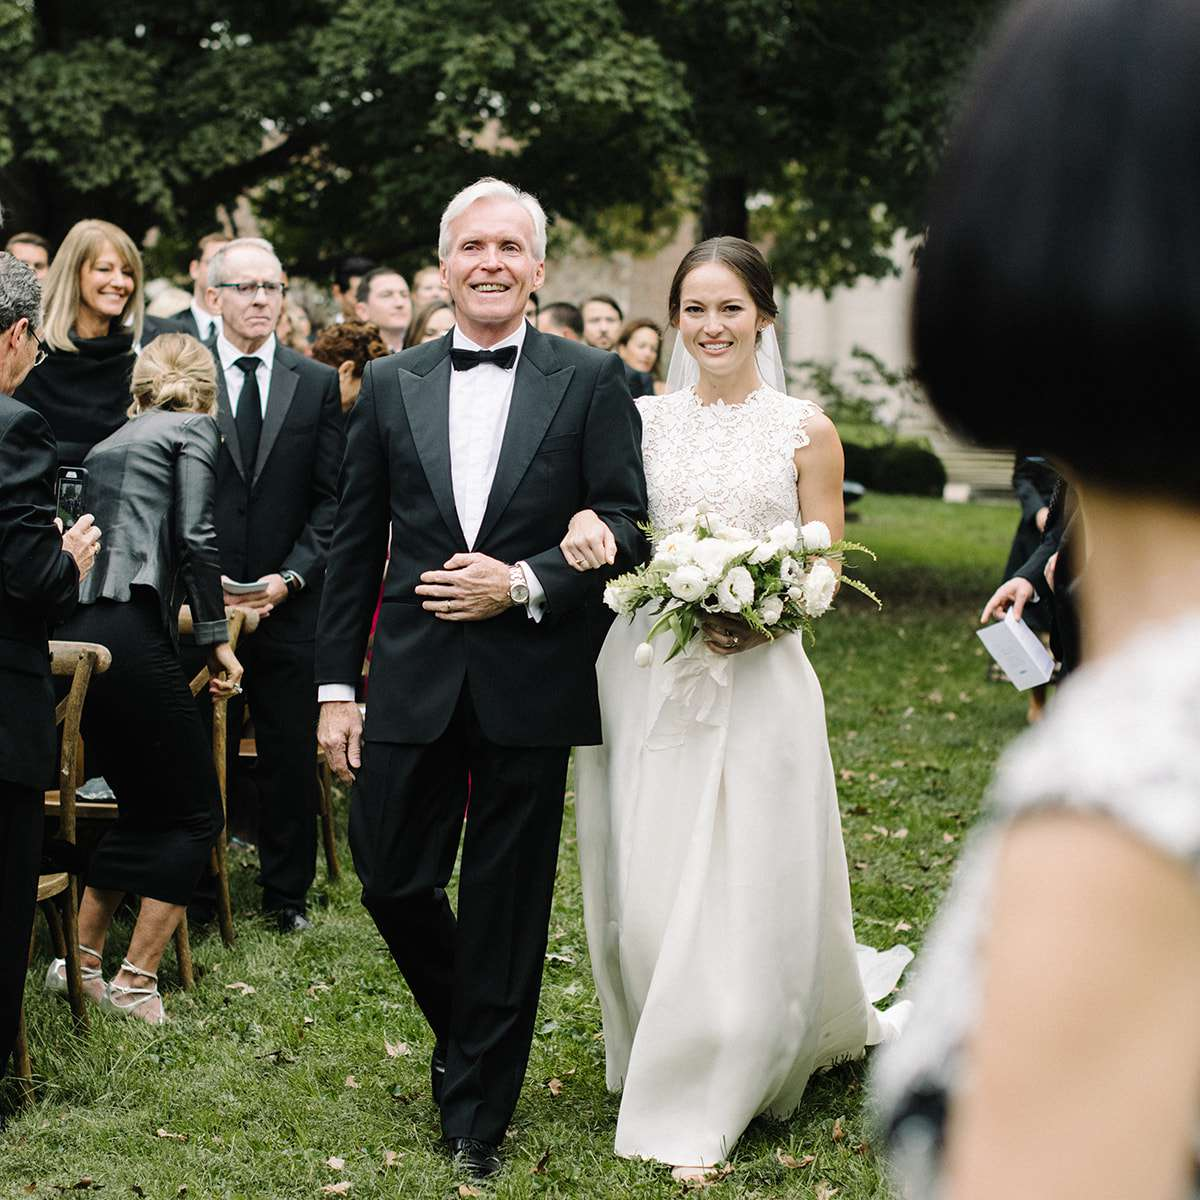 The bride and her father walk up the aisle.